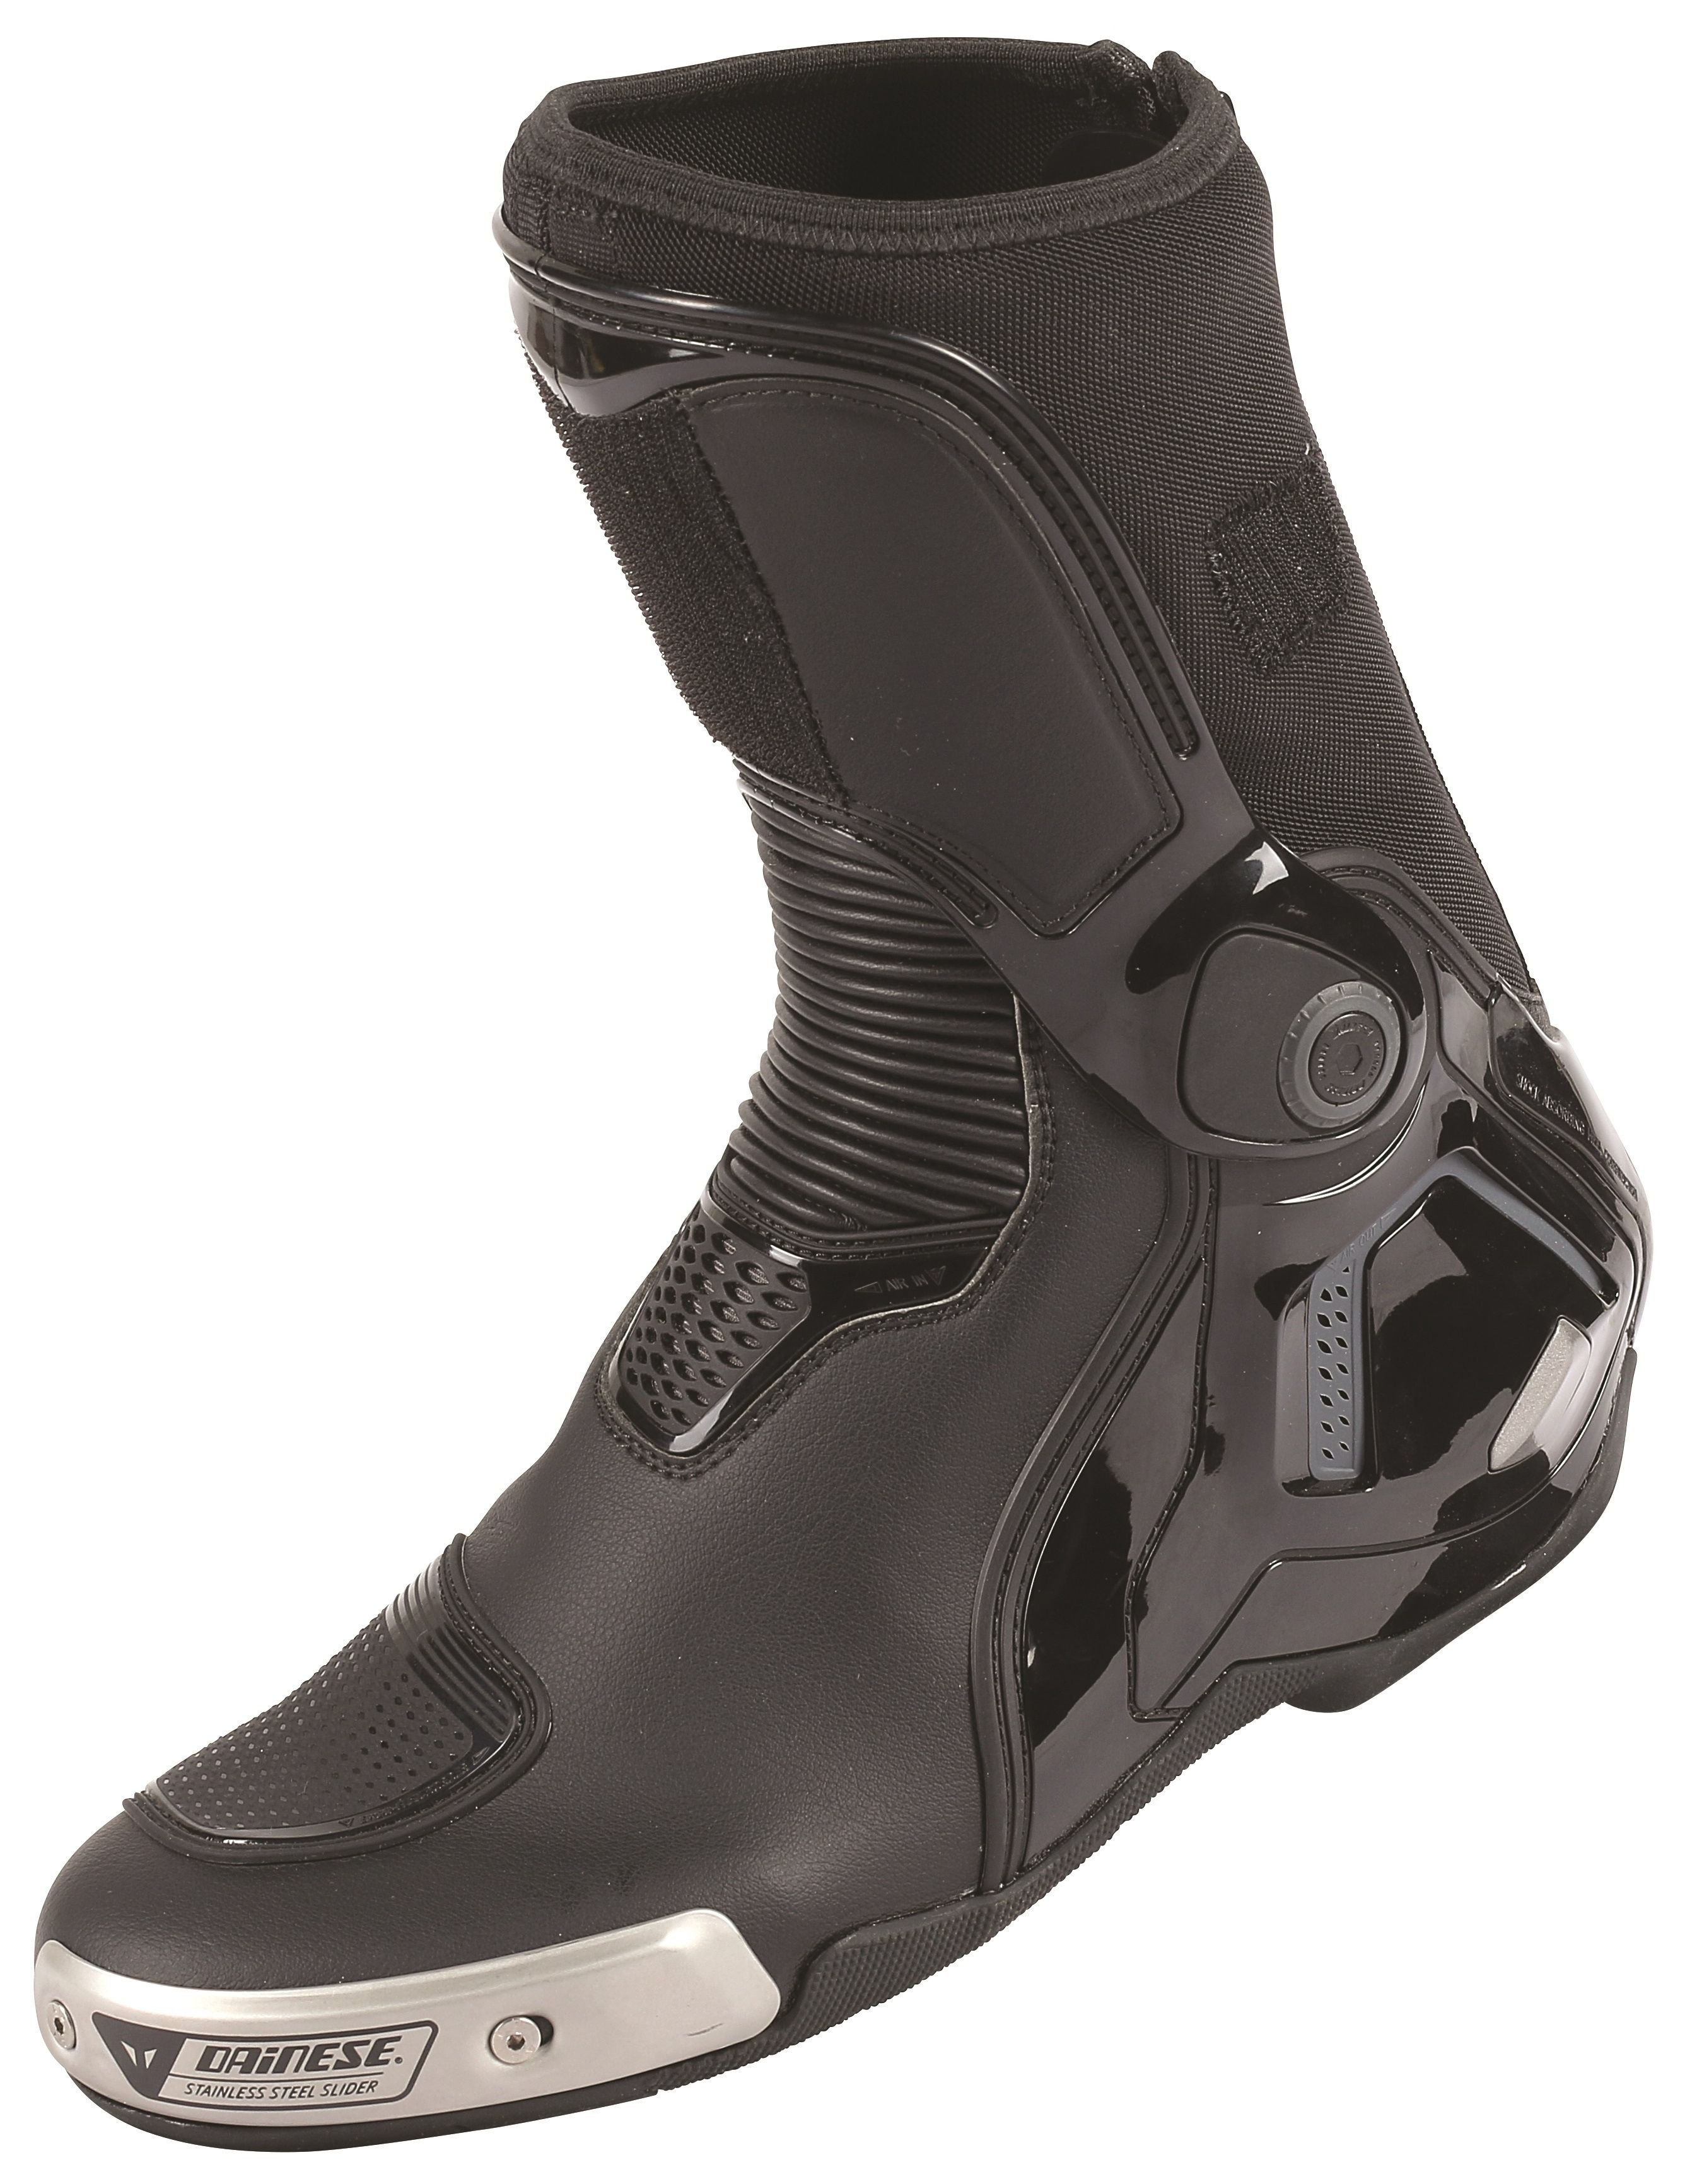 dainese torque d1 in boots revzilla. Black Bedroom Furniture Sets. Home Design Ideas